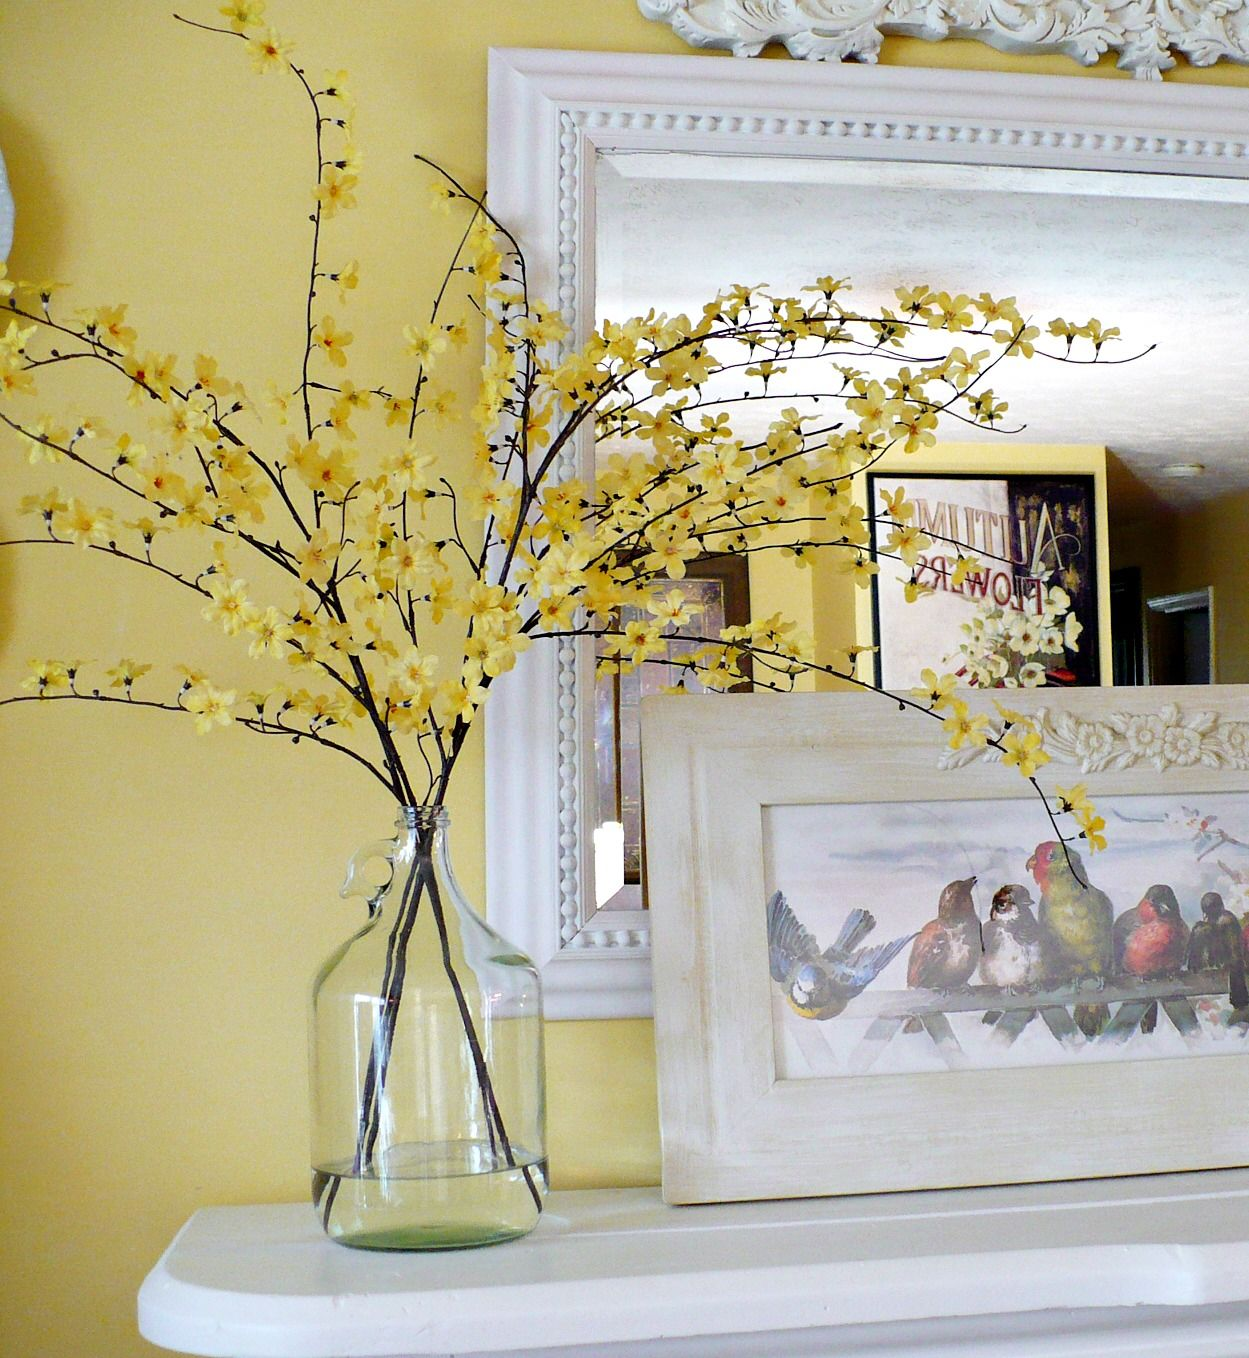 Decorative Jugs And Vases Decorating With Glass Bottles Glass Bottles Bottle And Mantels